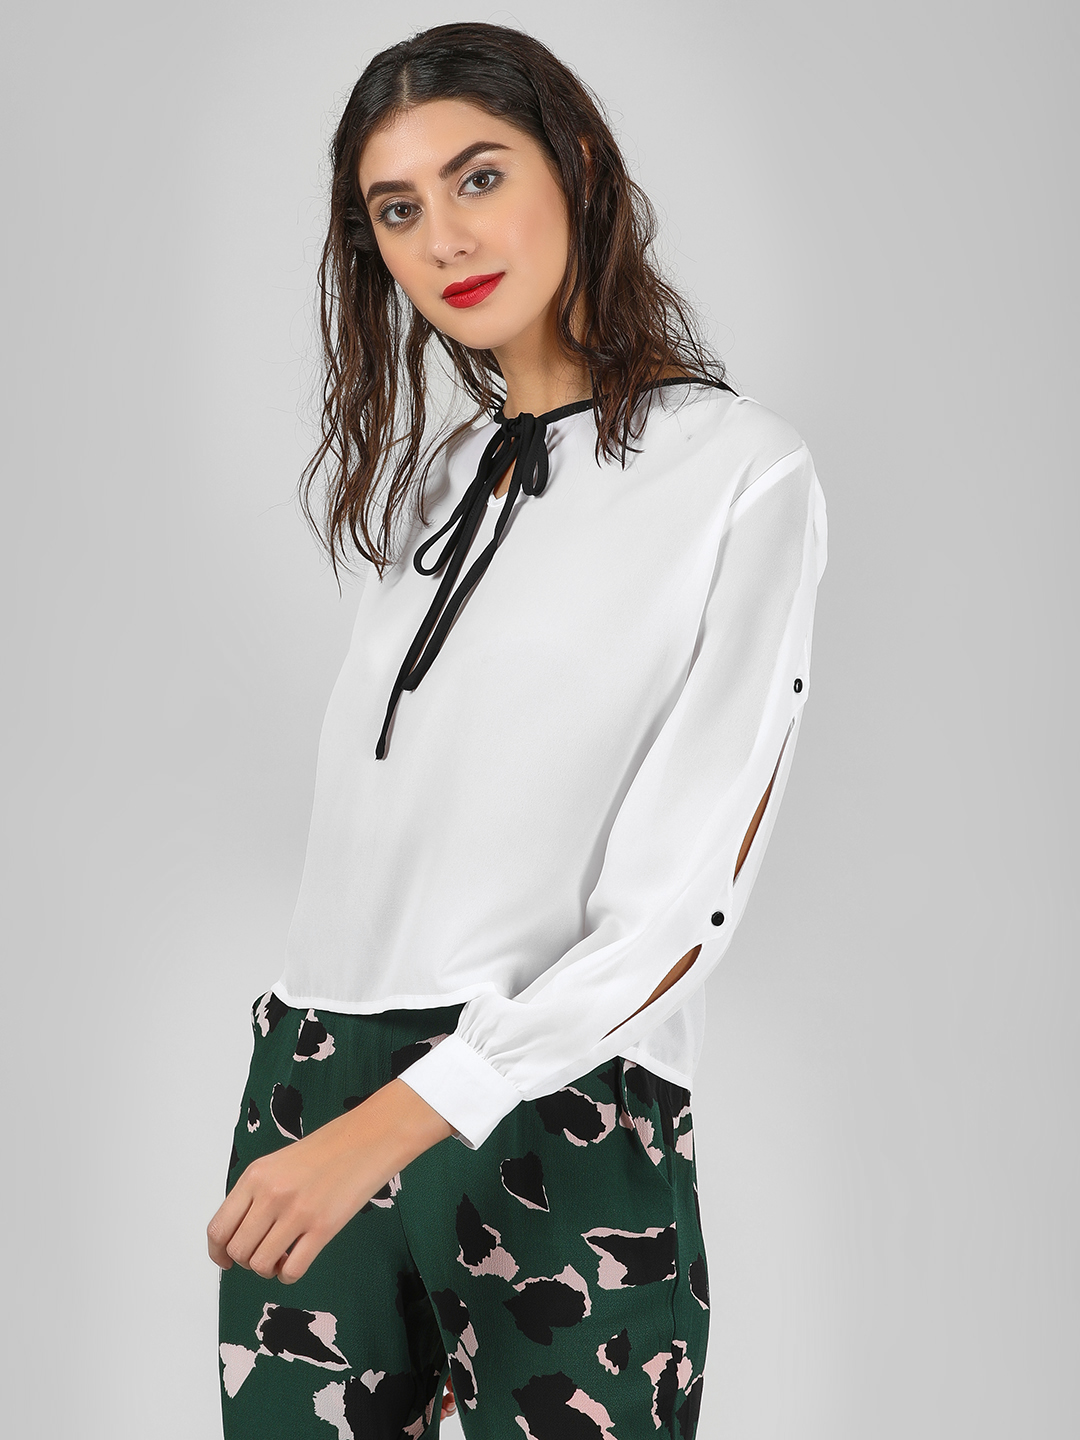 Street9 White Tie Knot Blouse With Popper Sleeves 1